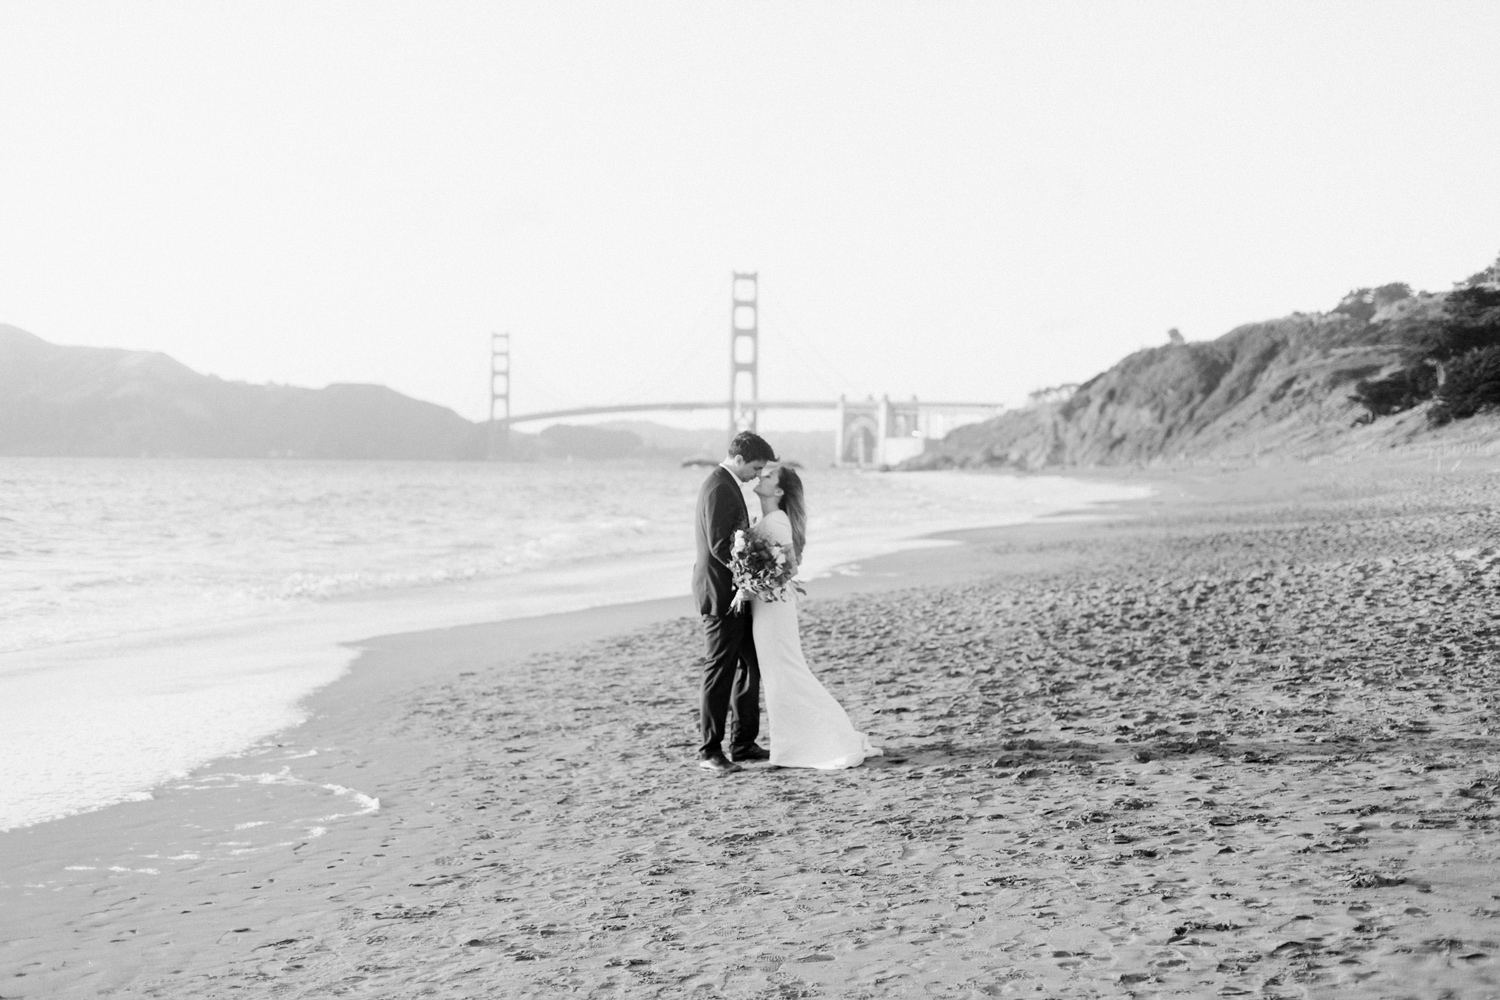 baker-beach-san-francisco-california-engagement-session-carography-stuidos-I58A8372.jpg